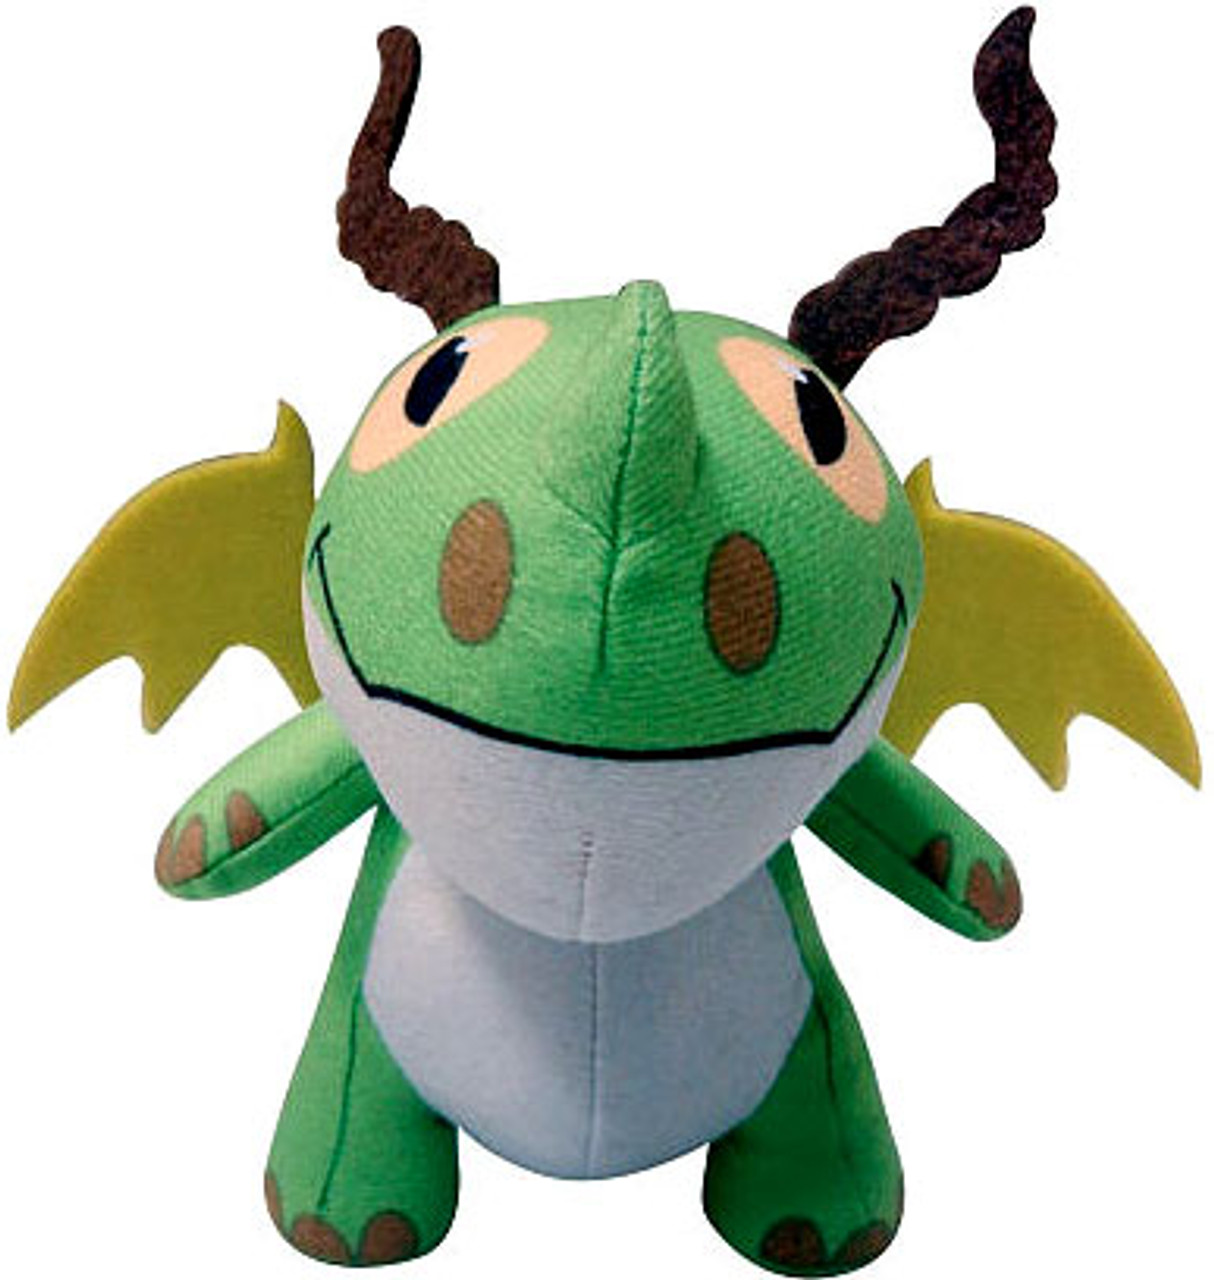 How to Train Your Dragon Defenders of Berk Buddies [With Sound] Terrible Terror Plush